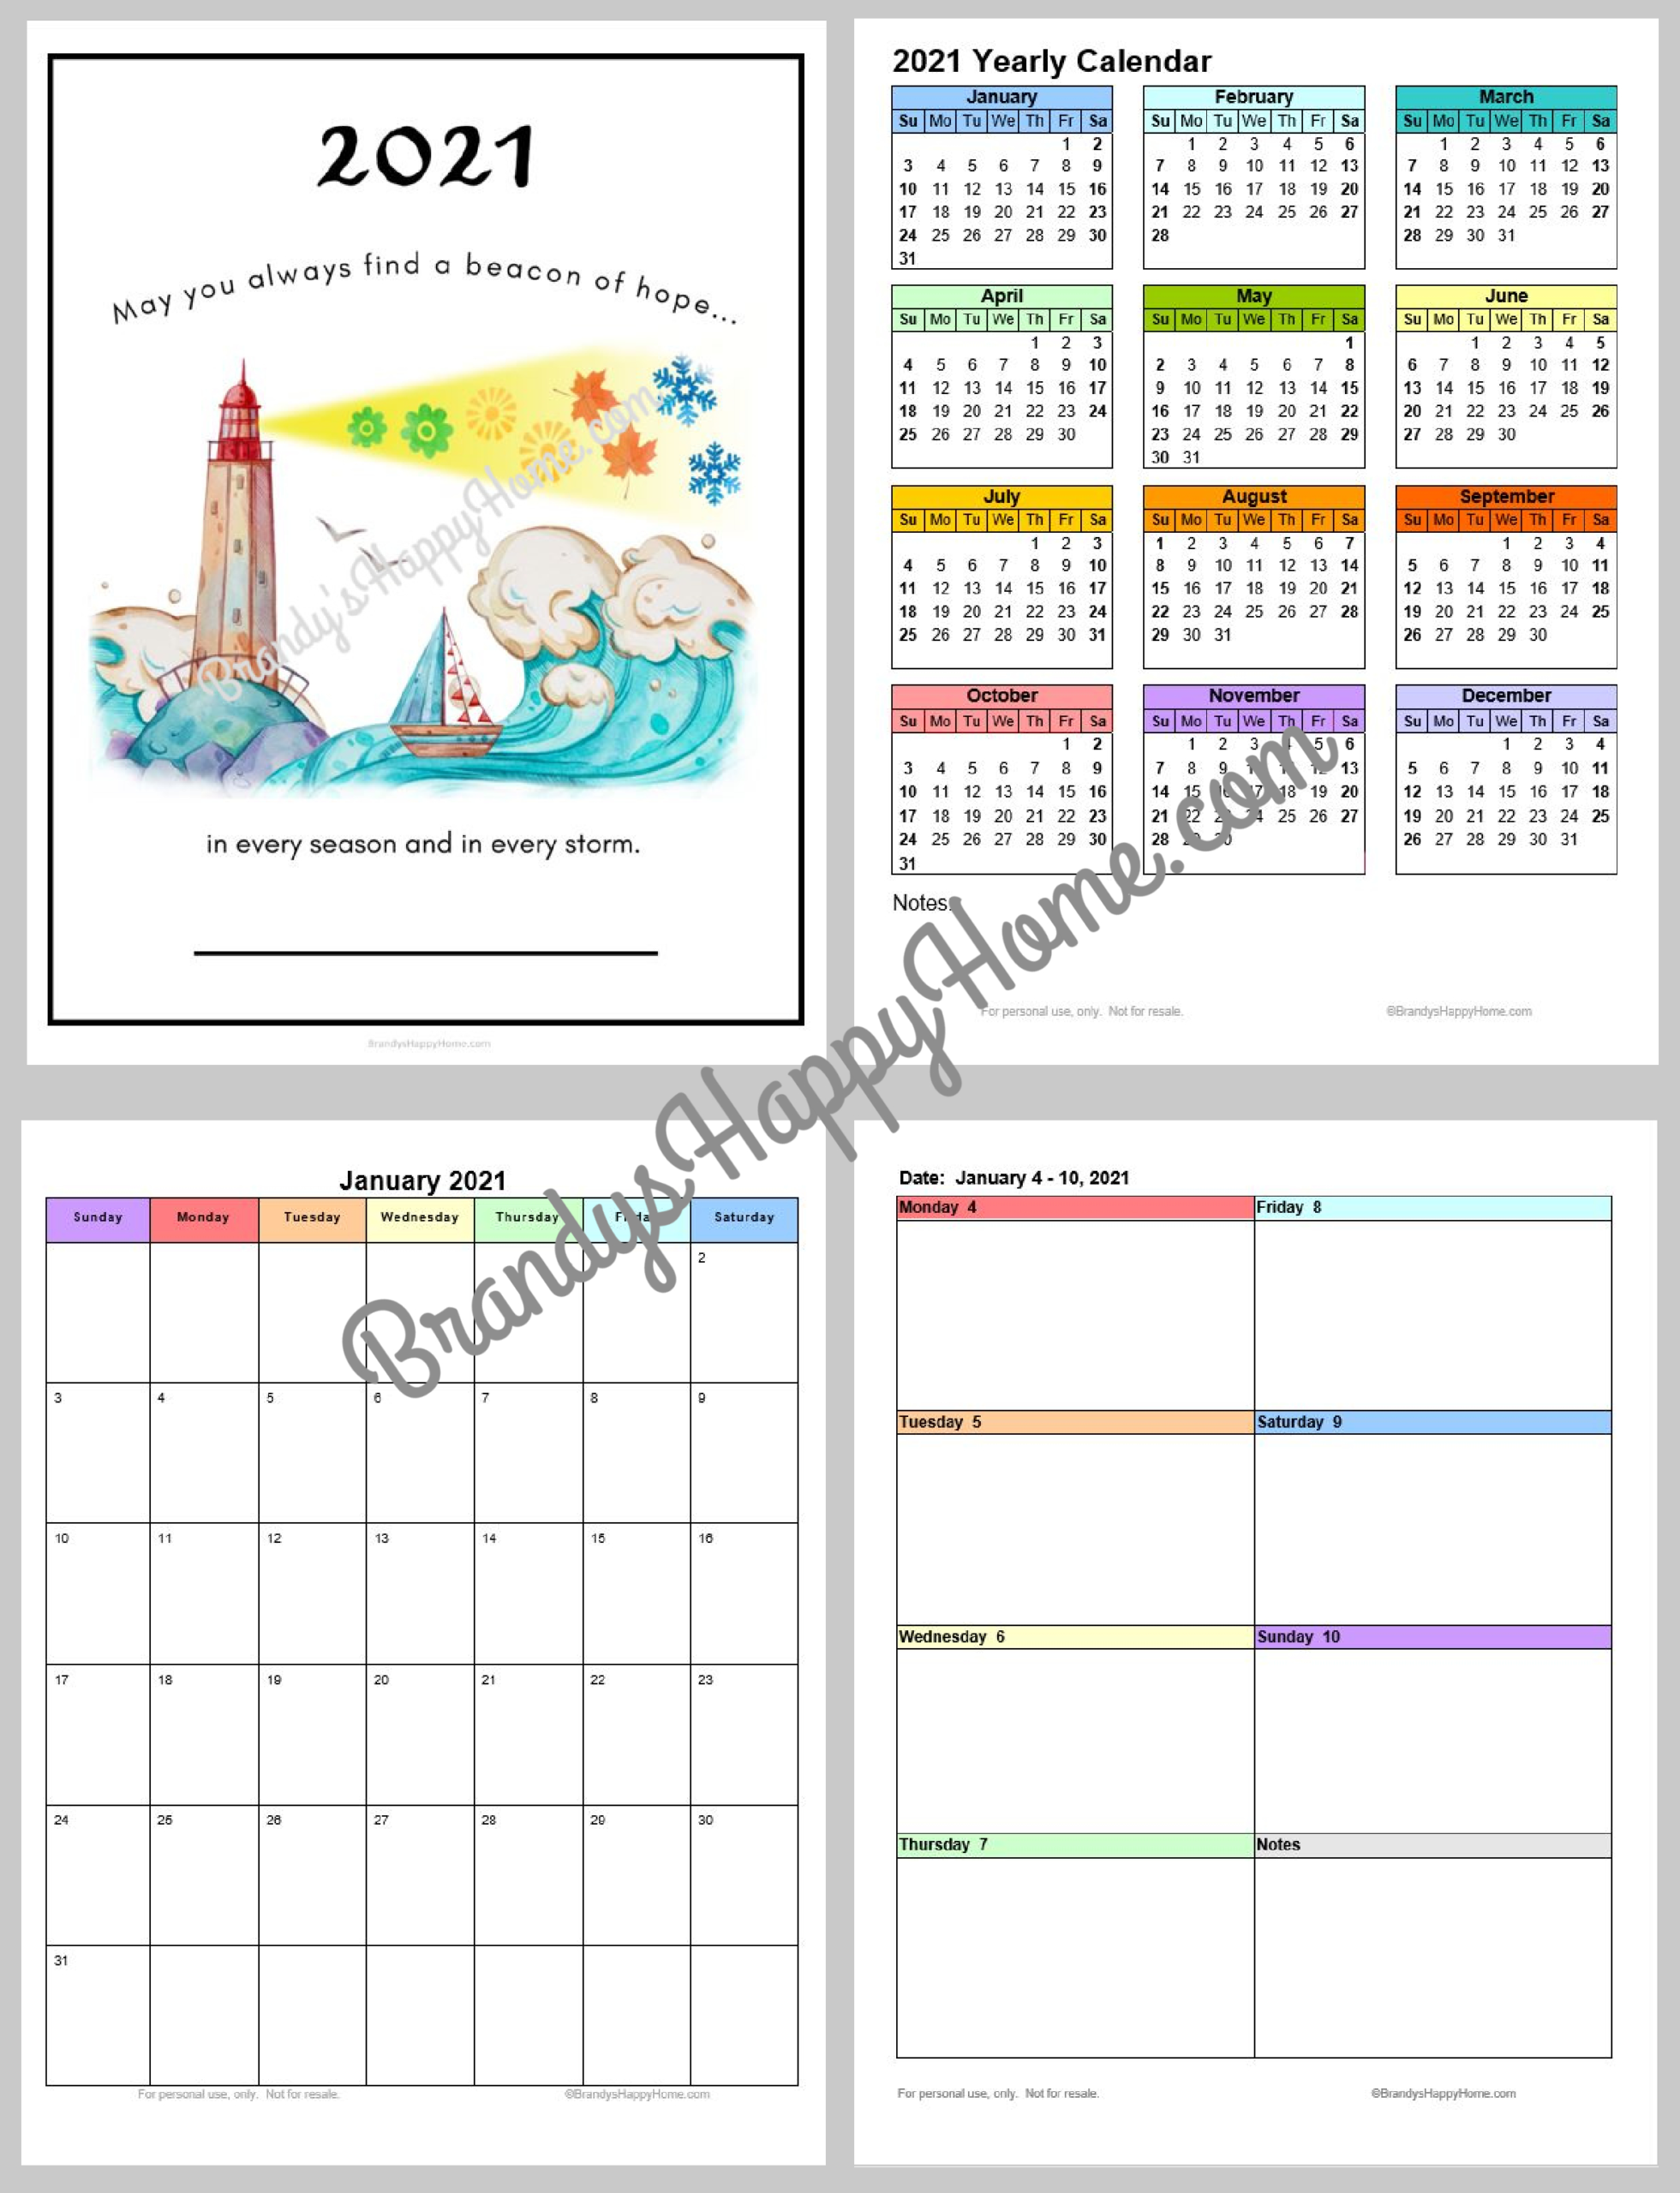 Free 2021 Calendar Planner Printables for 2021-2021 Two Year Planner: Calendar